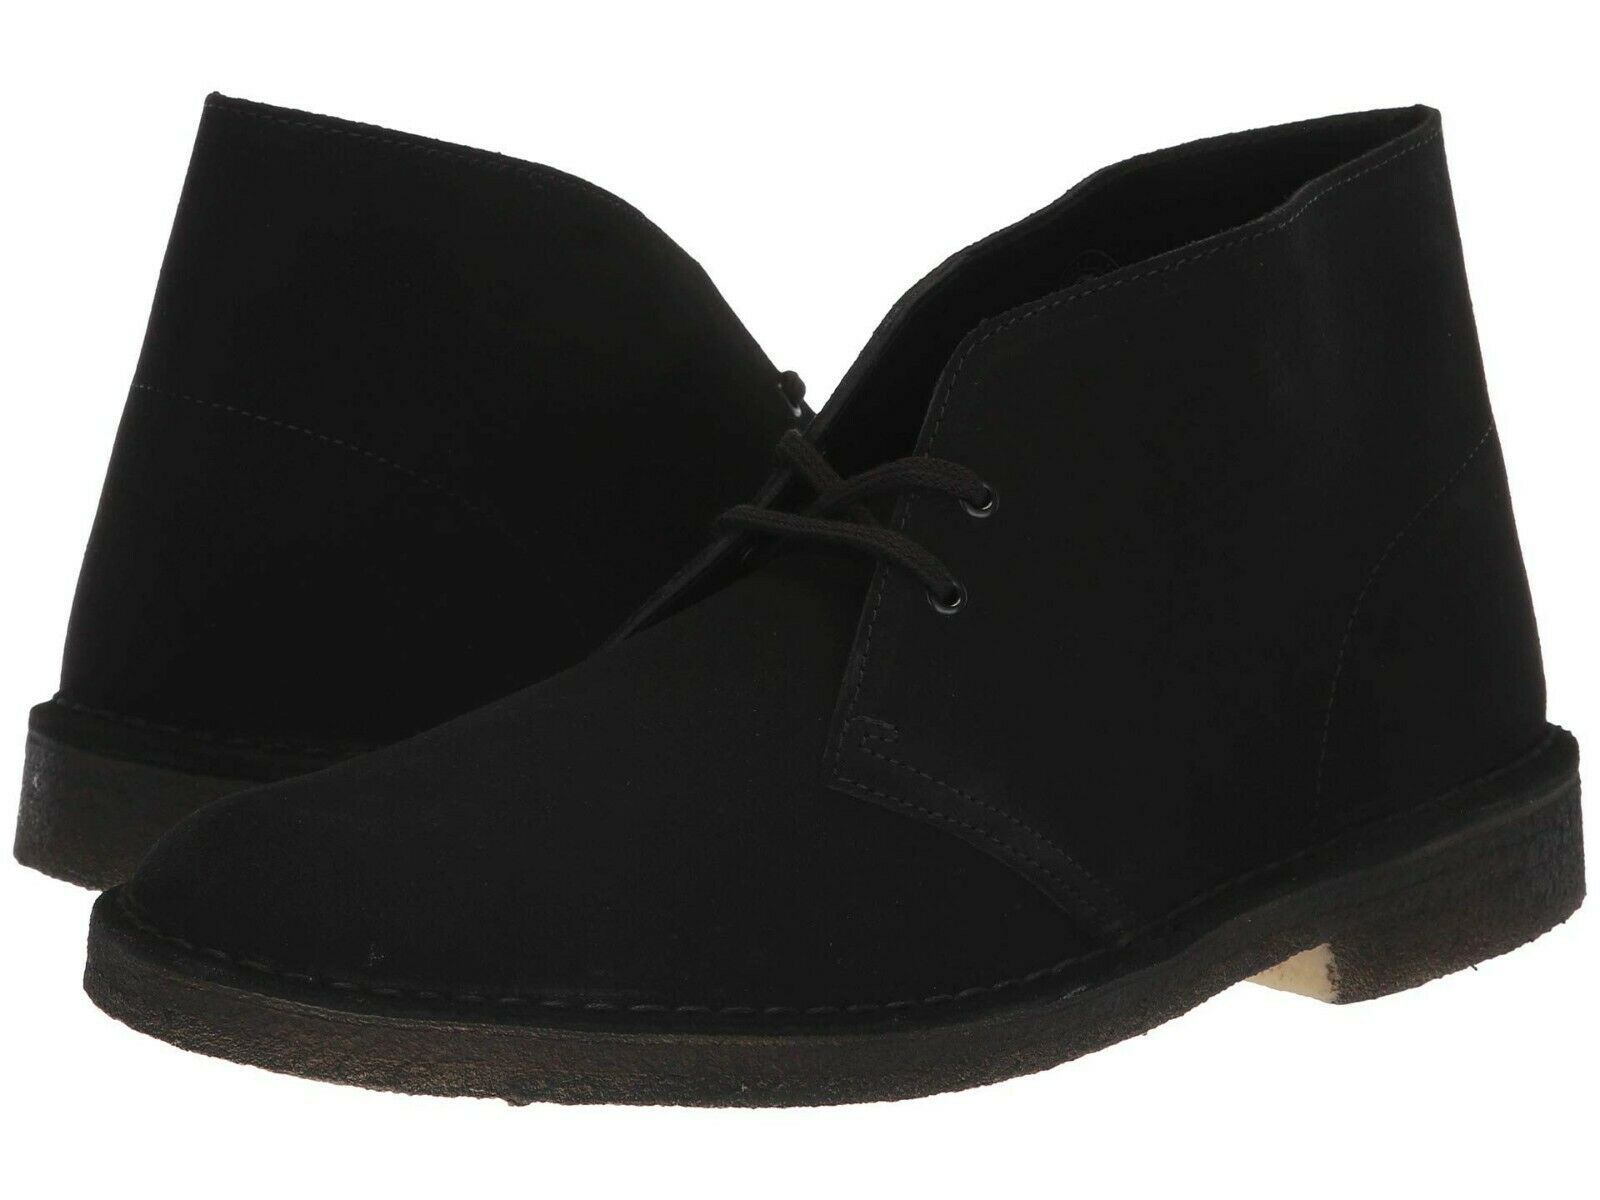 Men's Shoes Clarks Originals DESERT BOOT Chukkas 38227 BLACK SUEDE